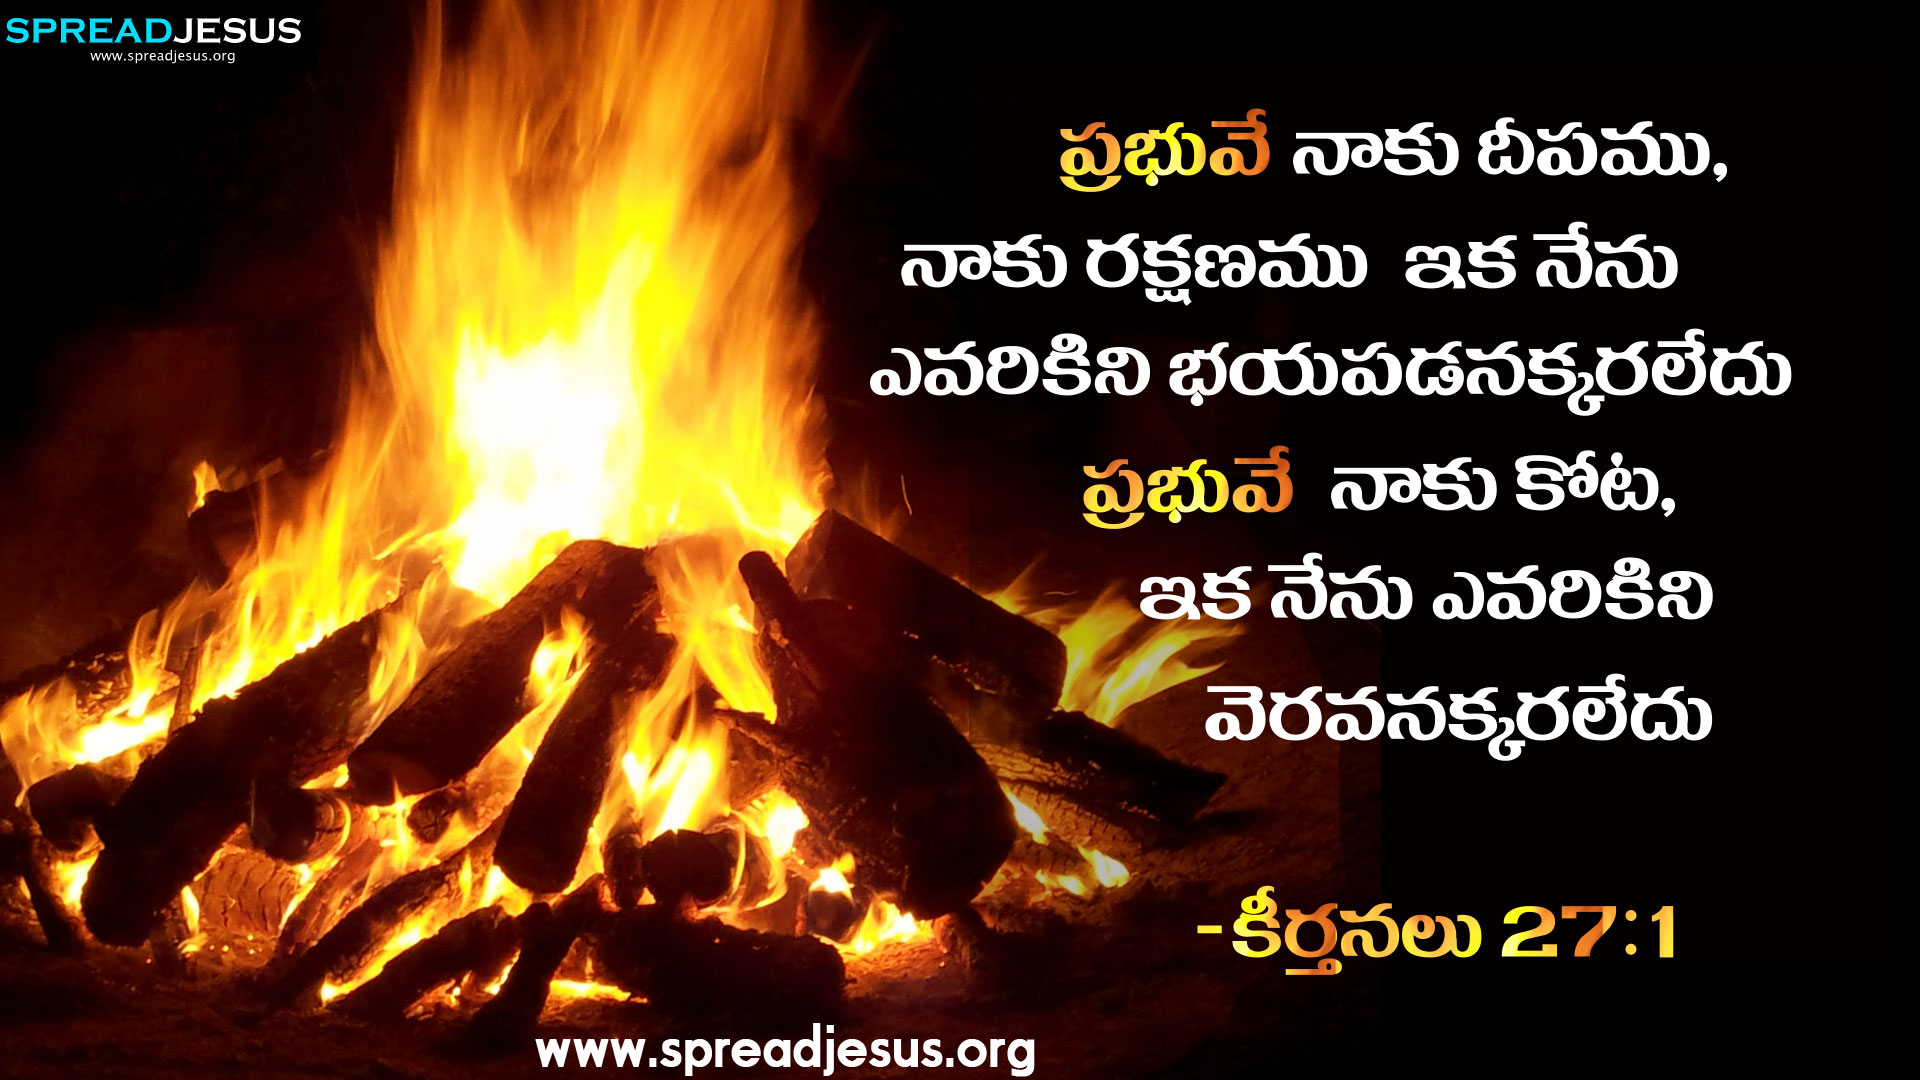 TELUGU BIBLE QUOTES HD-WALLPAPERS KEERTHANALU 27:1 FREE DOWNLOAD KEERTHANALU 27:1 TELUGU BIBLE QUOTES HD-WALLPAPERS FREE DOWNLOAD BIBLE QUOTES TELUGU HD-WALLPAPERS KEERTHANALU 27:1 TELUGU HD-WALLPAPERS FREE DOWNLOAD